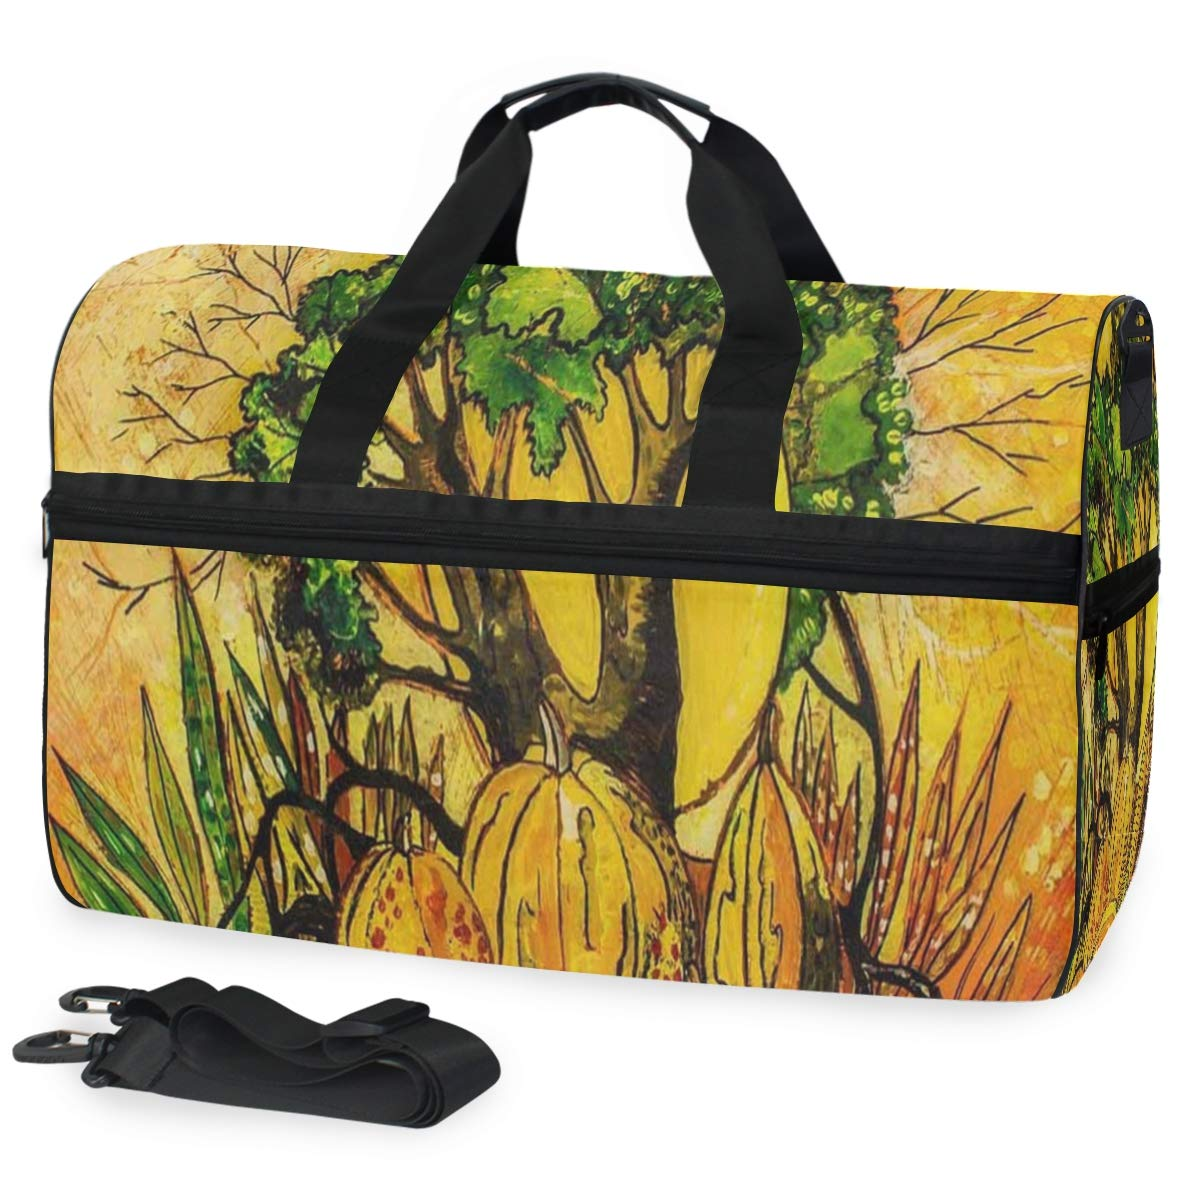 Autumn Fall Landscape With Pumpkins Large Canvas shoulder bag with Shoe Compartment Travel Tote Luggage Weekender Duffle Bag